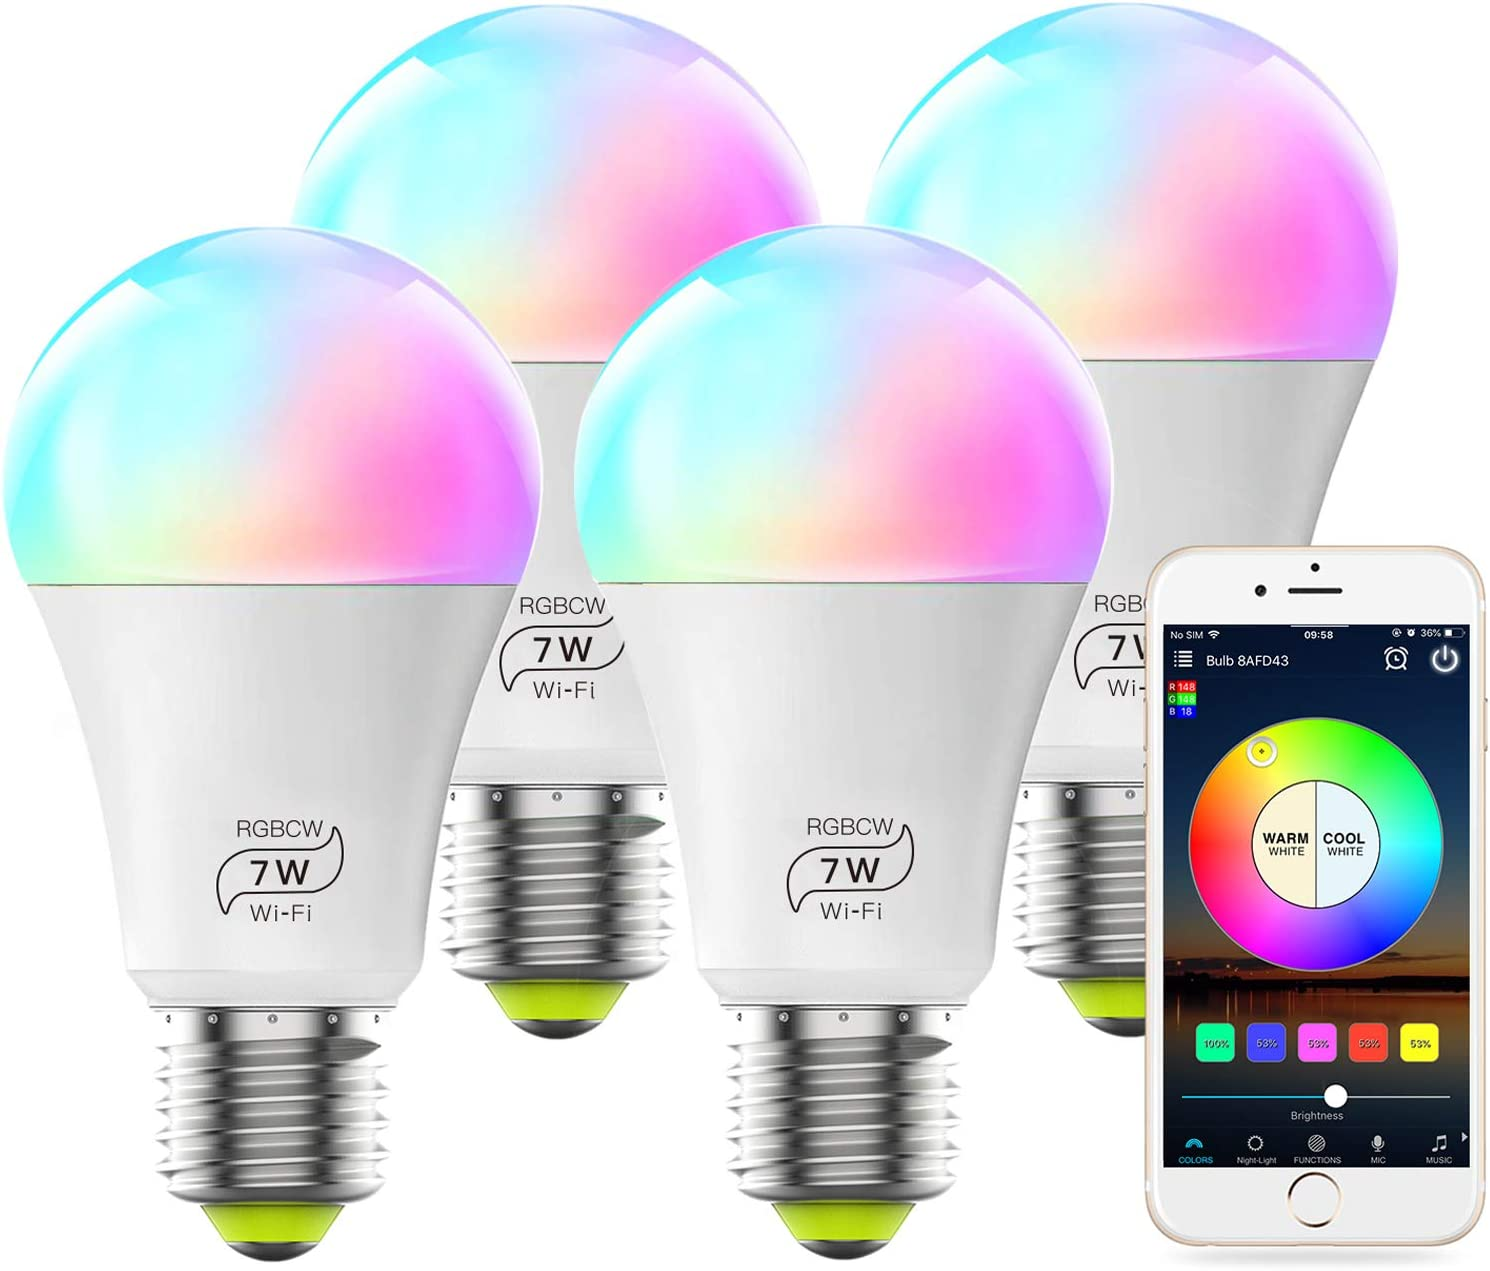 MagicLight Smart WiFi Bulb No Hub Required, Dimmable Multicolor E26 A19 7W (60w Equivalent) RGBCW LED Smart Light, Compatible with Alexa Google Home and Siri (4 Pack)